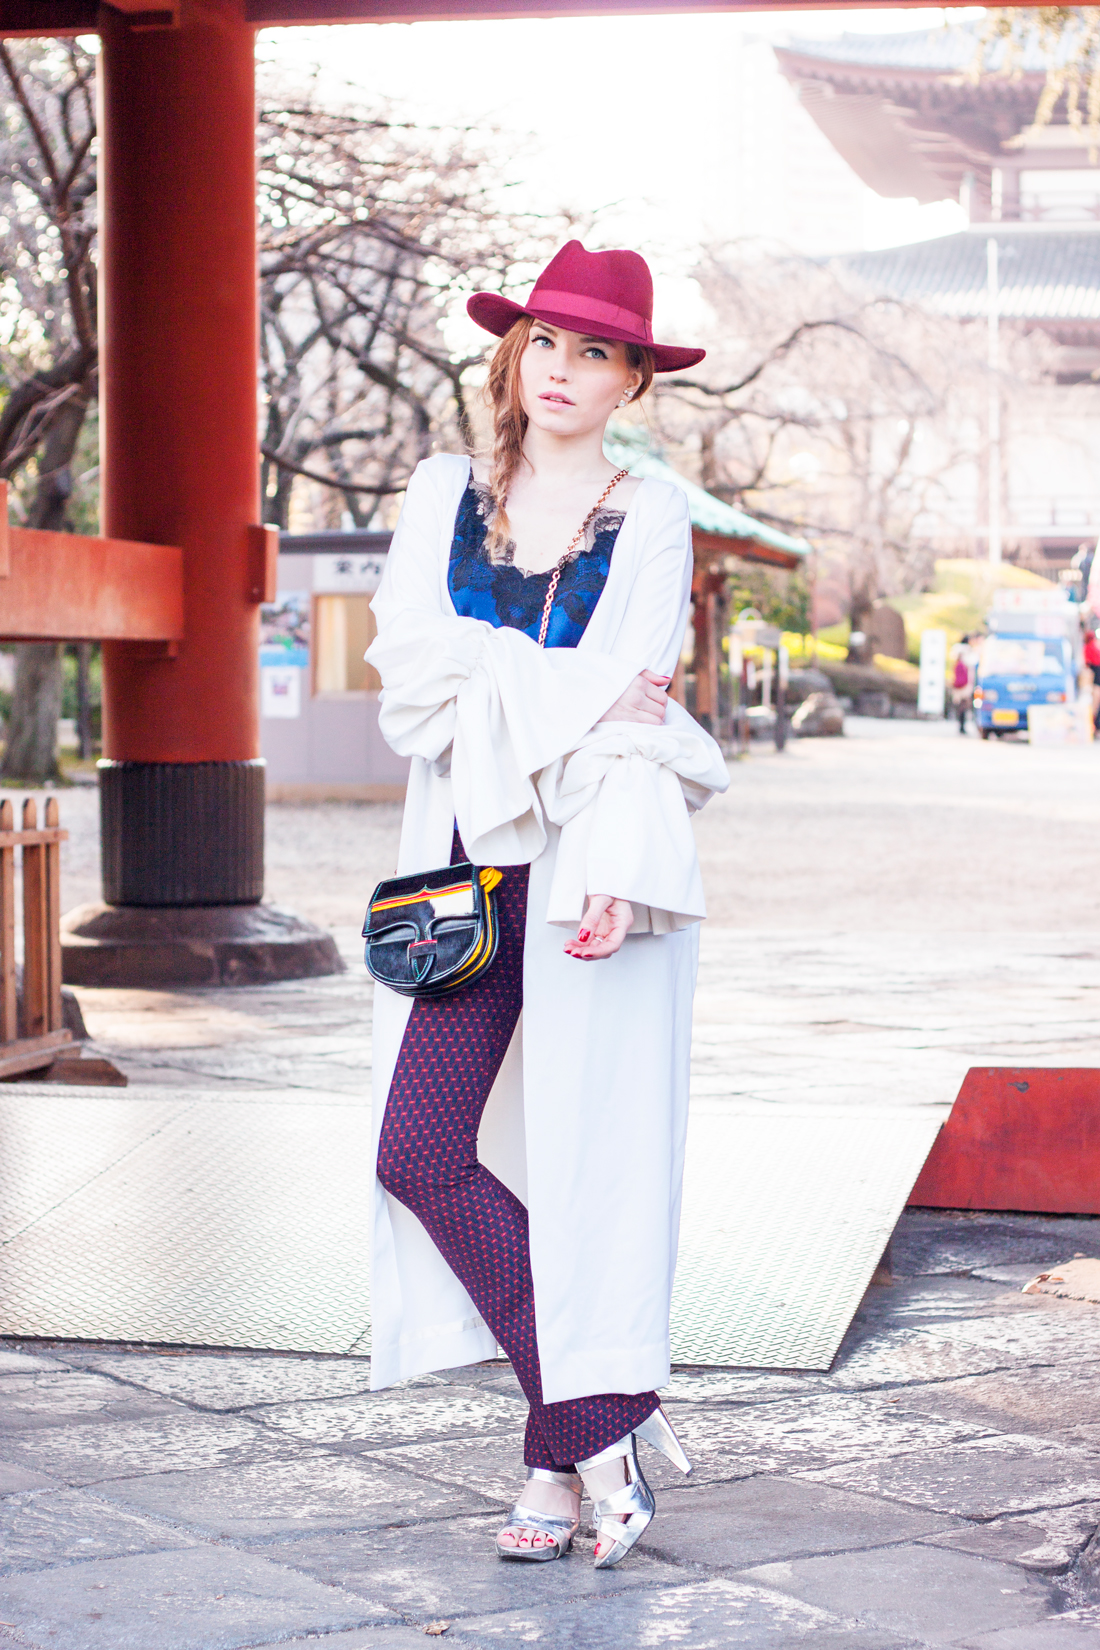 Calle Evans, American Fashion Designer, wool coat, fedora, japan, temple japanese, japanese culture, japanese history, tokyo, tokyo street style, ume blossom, zojo-ji temple